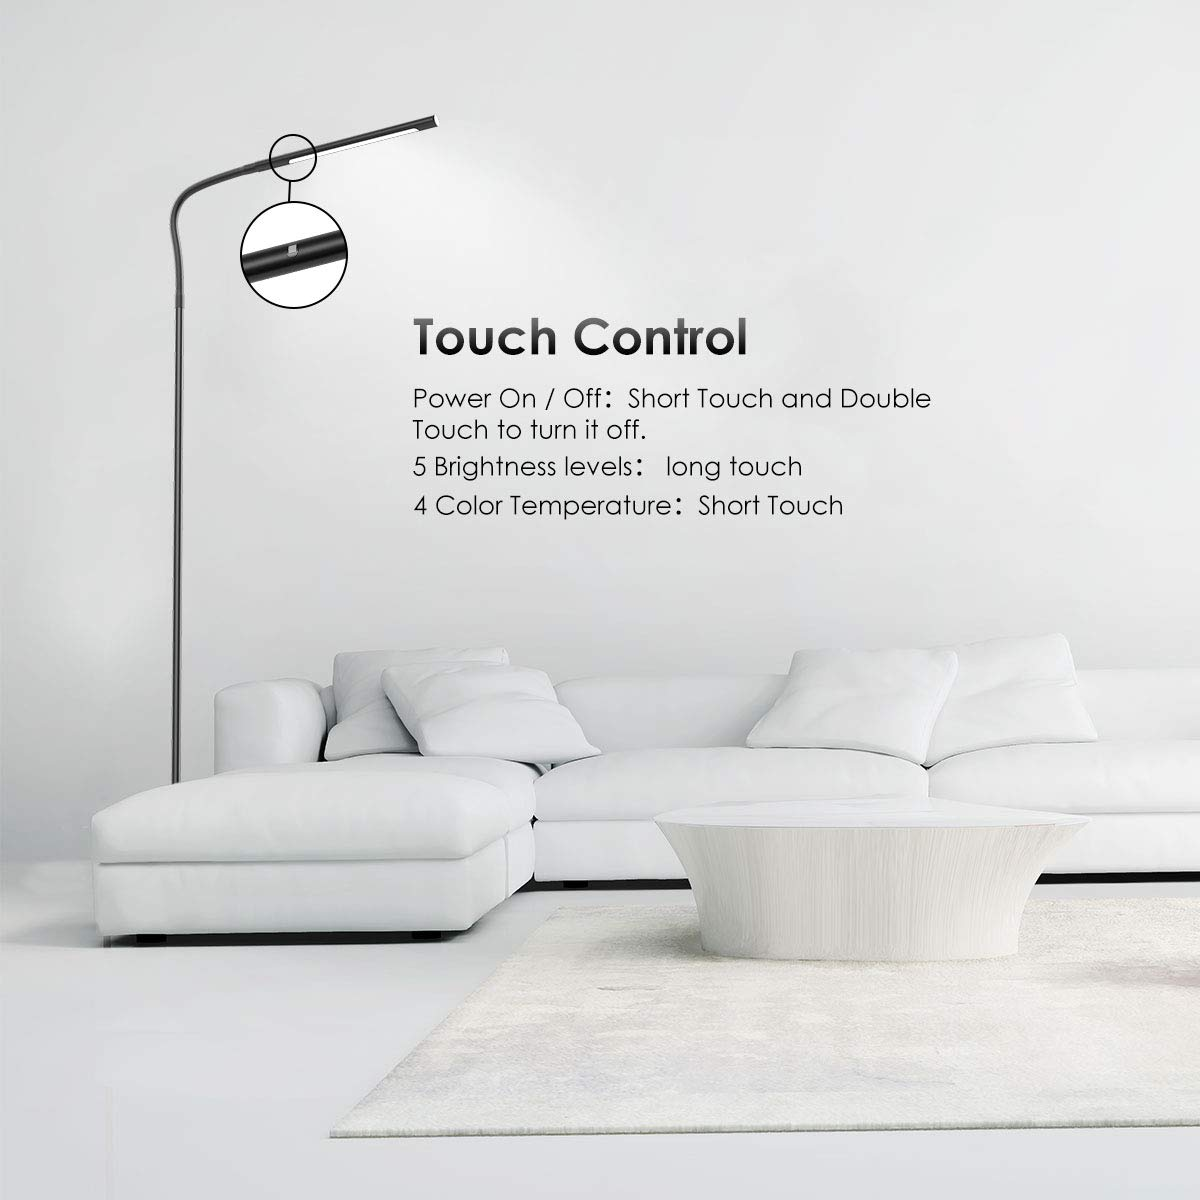 Joly Joy Floor Lamps for Living Room, 12W Dimmable Flexible Gooseneck Standing Lamp, Reading Light with Touch Remote Control, 4 Color & 5 Brightness Dimmer, LED Floor Lights for Bedroom, Chair, Couch